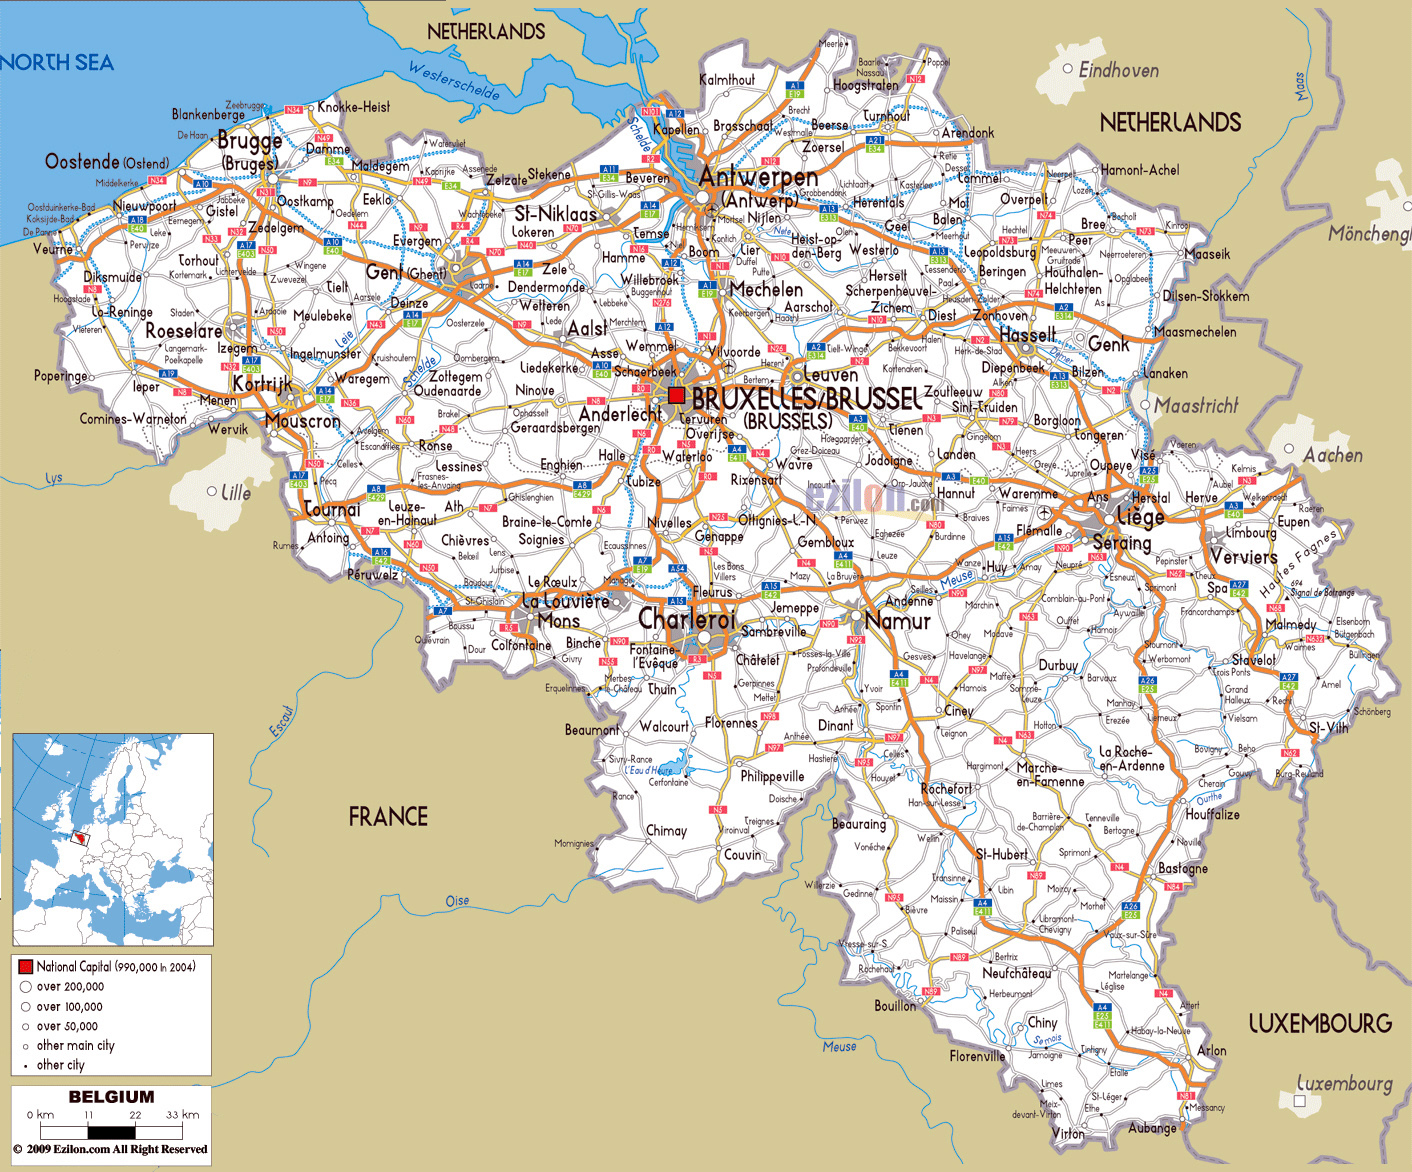 airports in belgium map Large Road Map Of Belgium With Cities And Airports Belgium Europe Mapsland Maps Of The World airports in belgium map